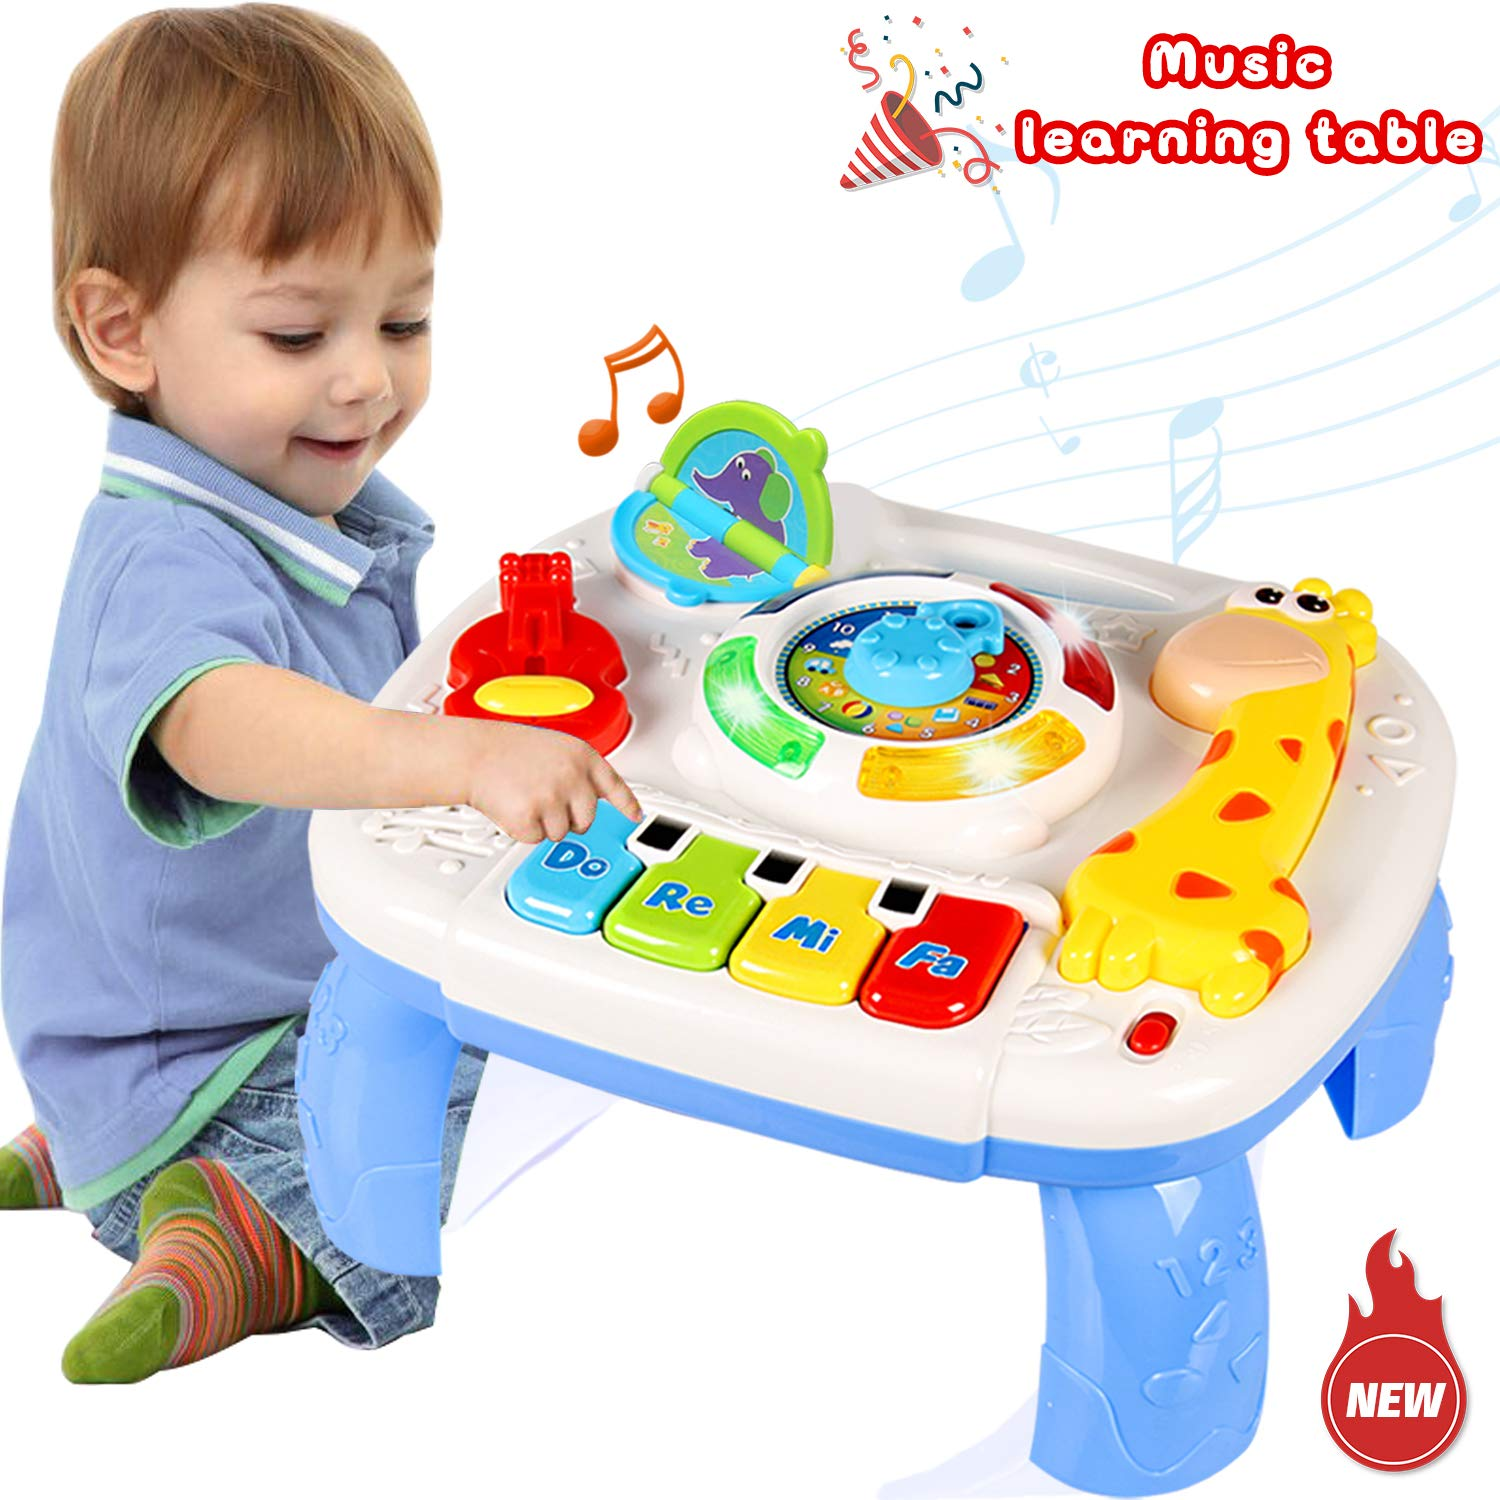 ACTRINIC Musical Learning Table Baby Toys 12-18 Months up ...